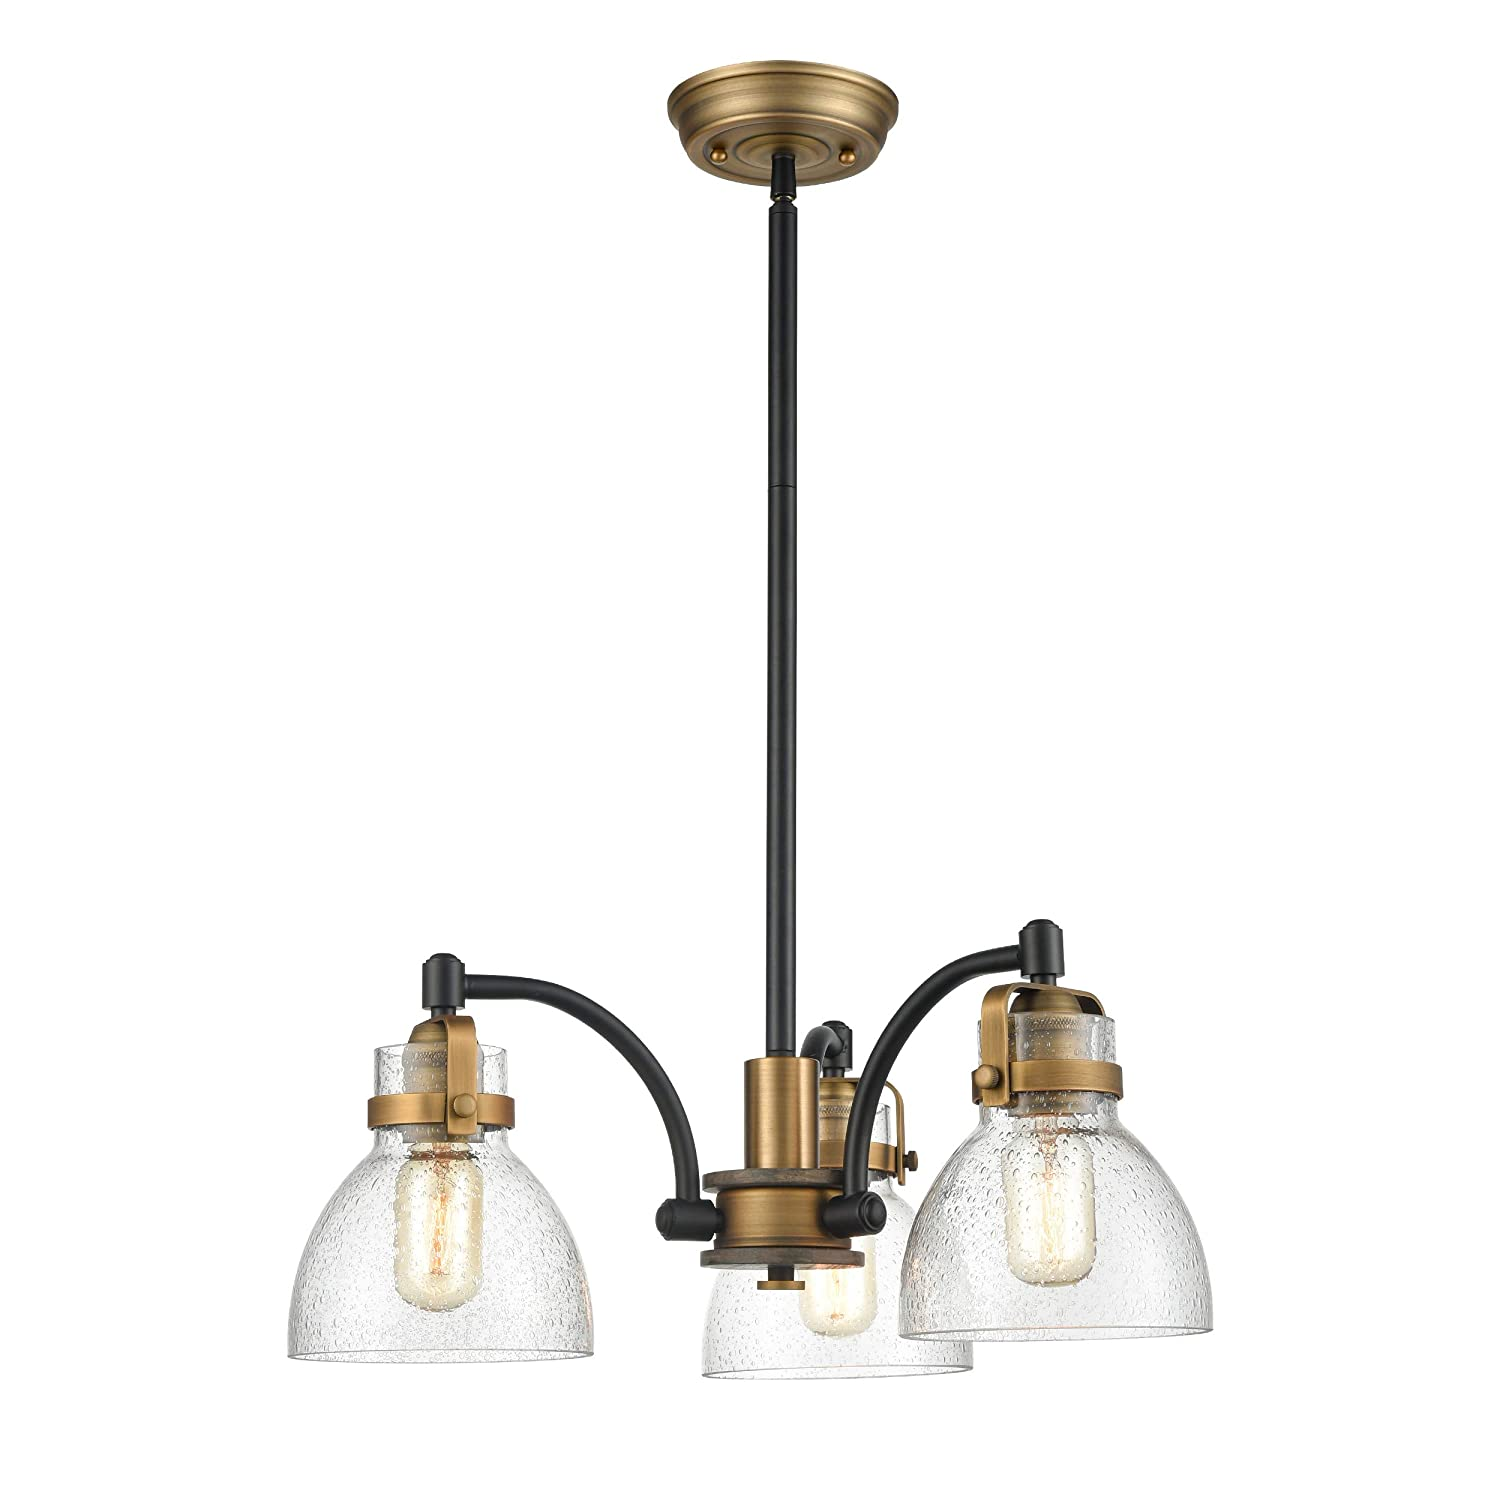 "WILDSOUL 10013BK 20"" Modern Farmhouse 3-Light Ceiling Pendant Chandelier, Matte Black and Antique Brass Finish Vintage Rustic Hanging Light Fixture, Seedy Dome Glass and Oak Wood, LED Compatible"